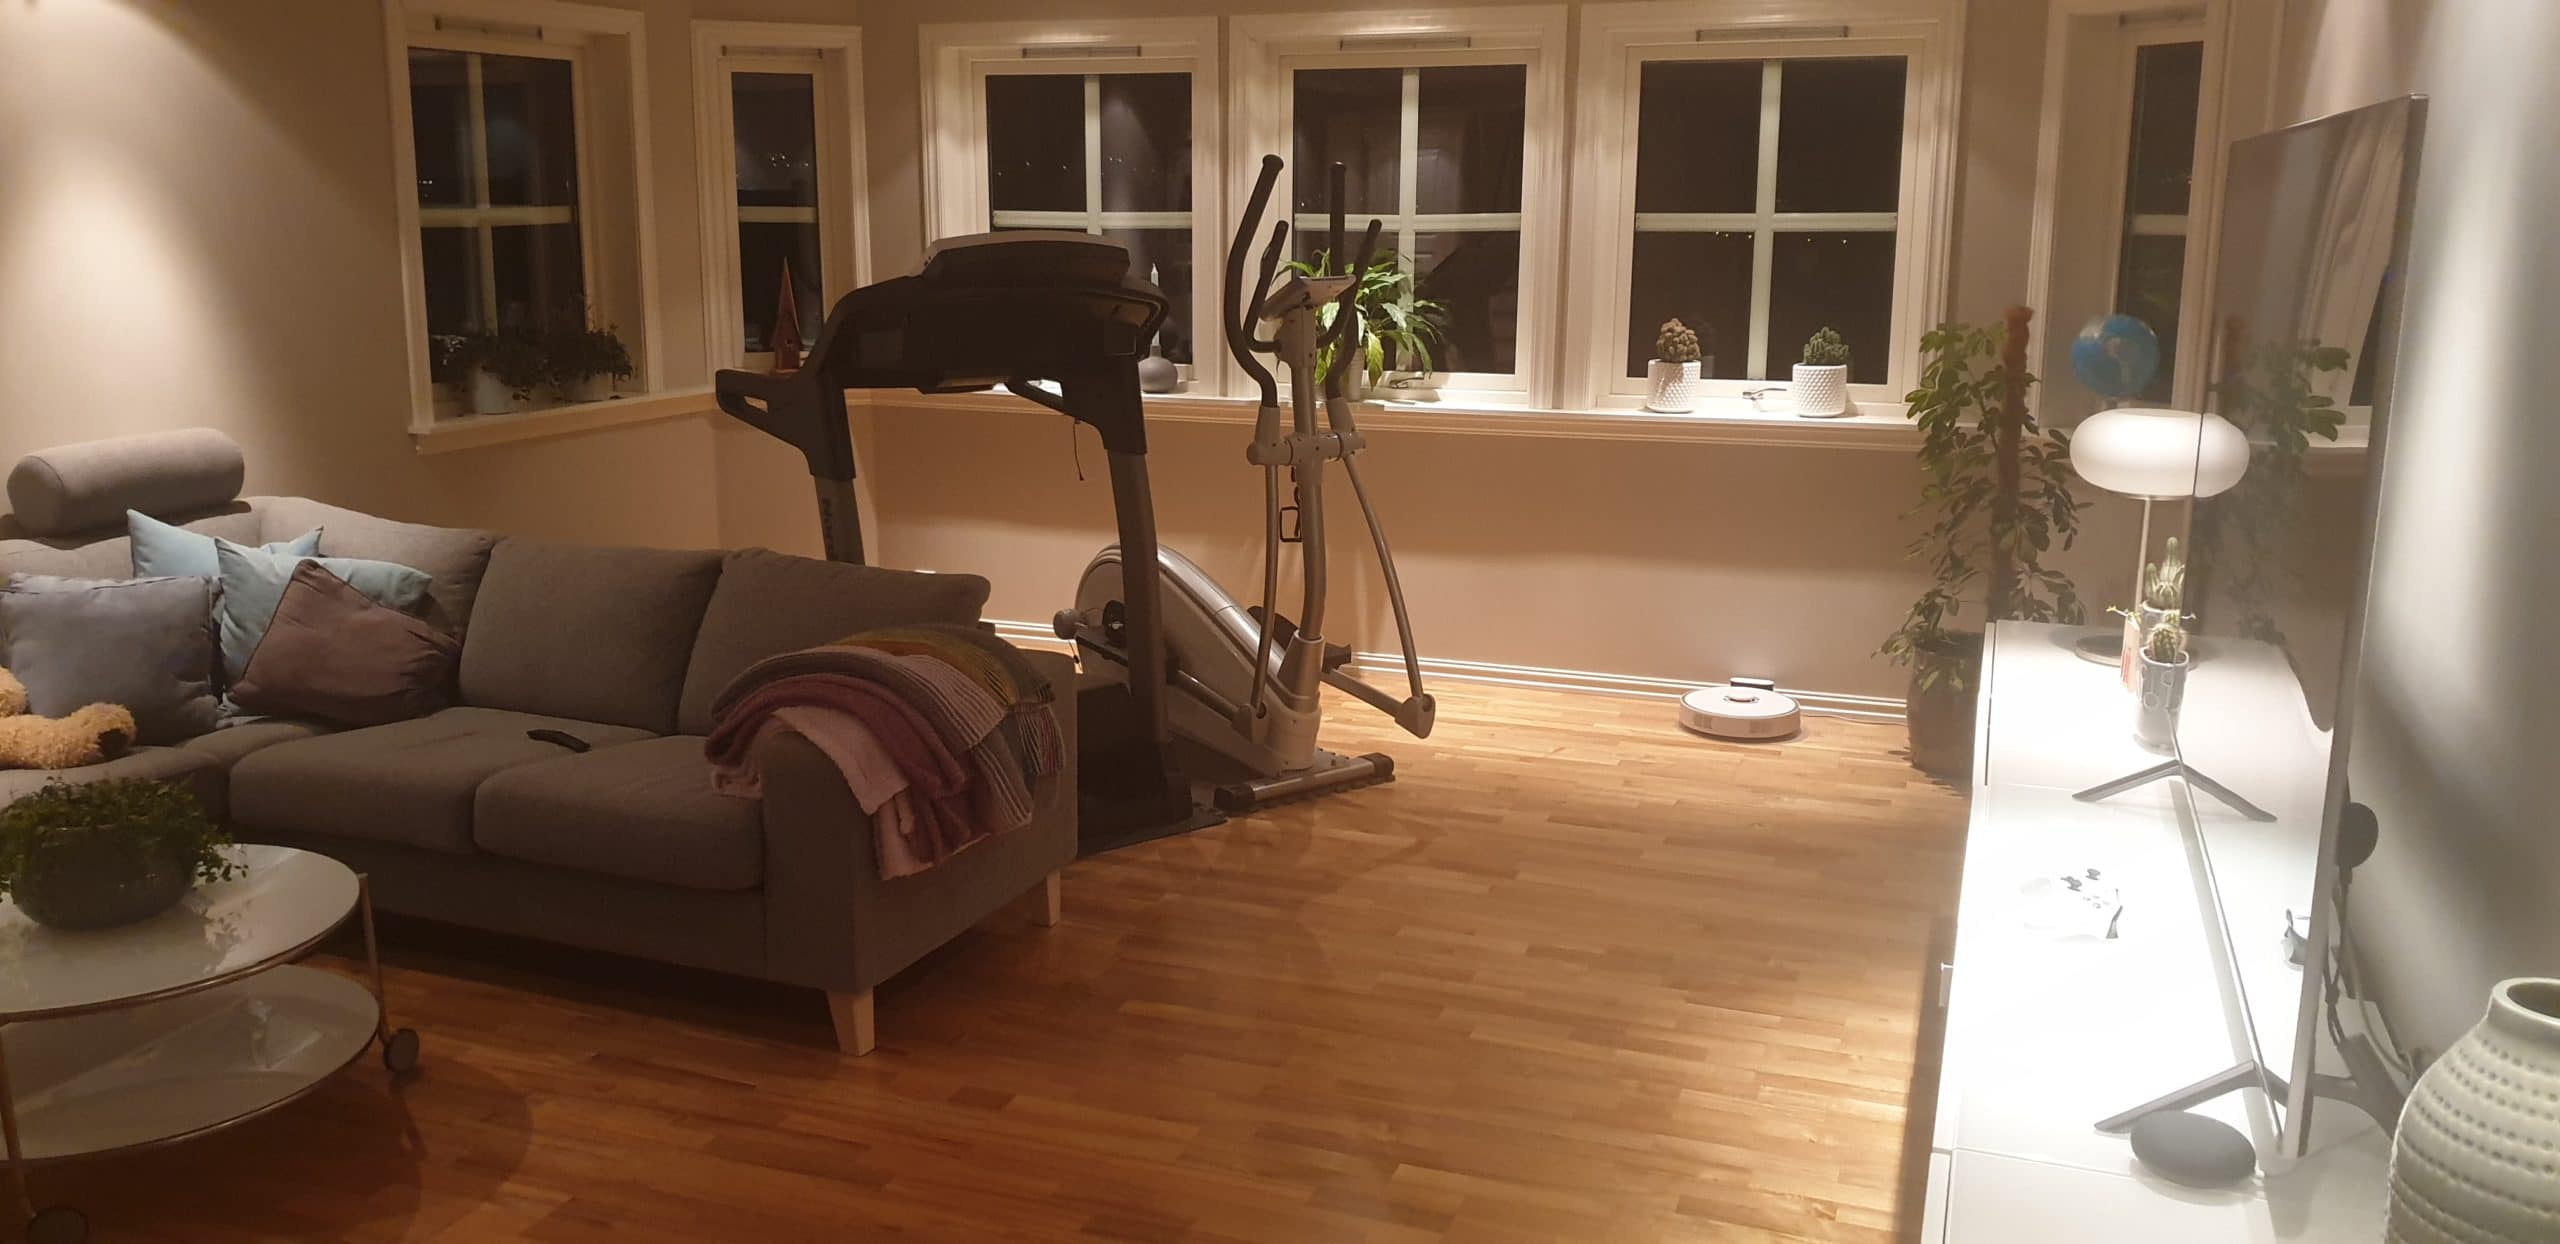 Downstairs gym